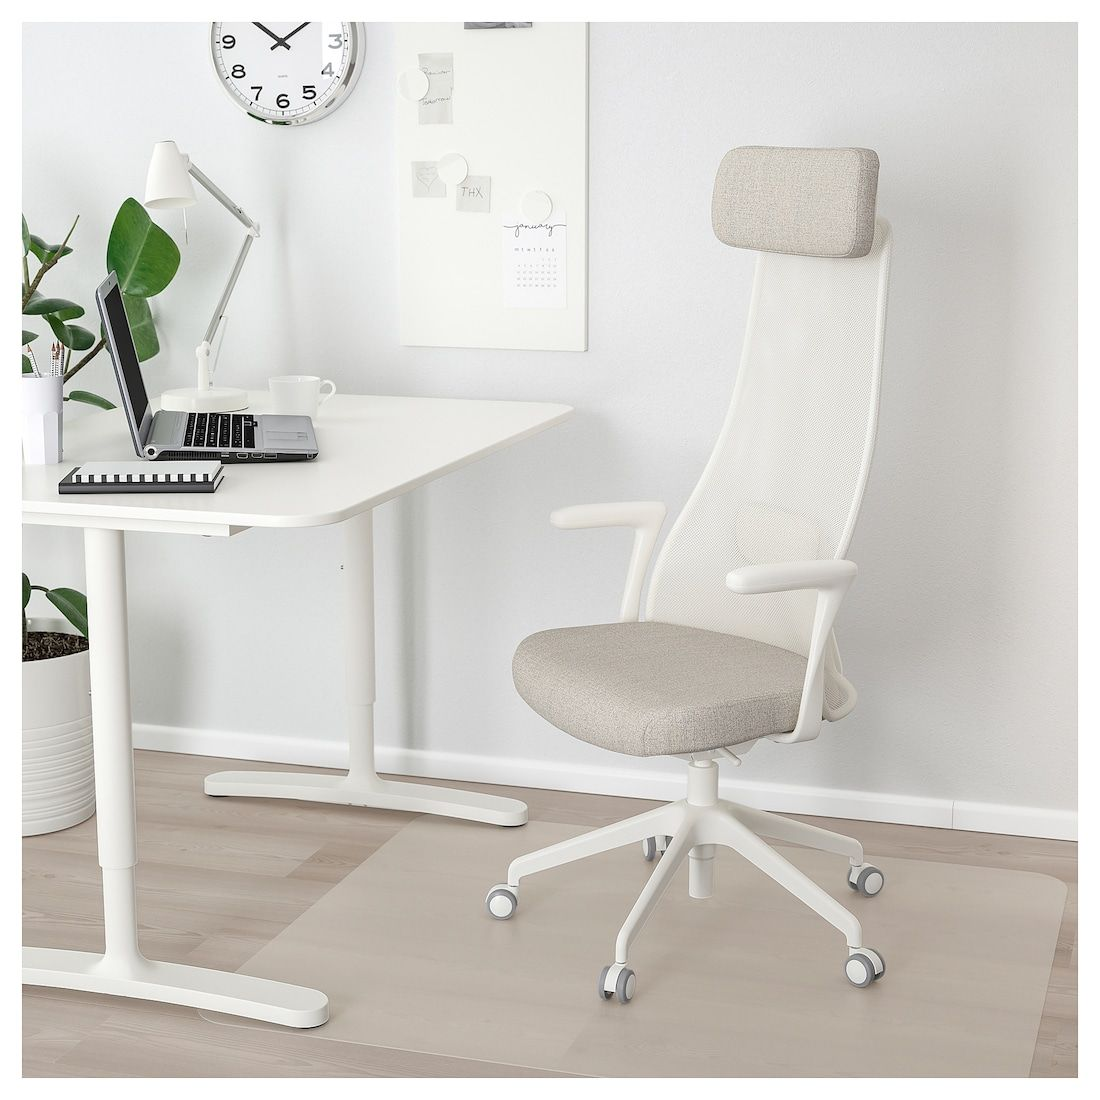 Järvfjället Office Chair With Armrests Gunnared Beige White Ikea Office Chair Chair Ikea